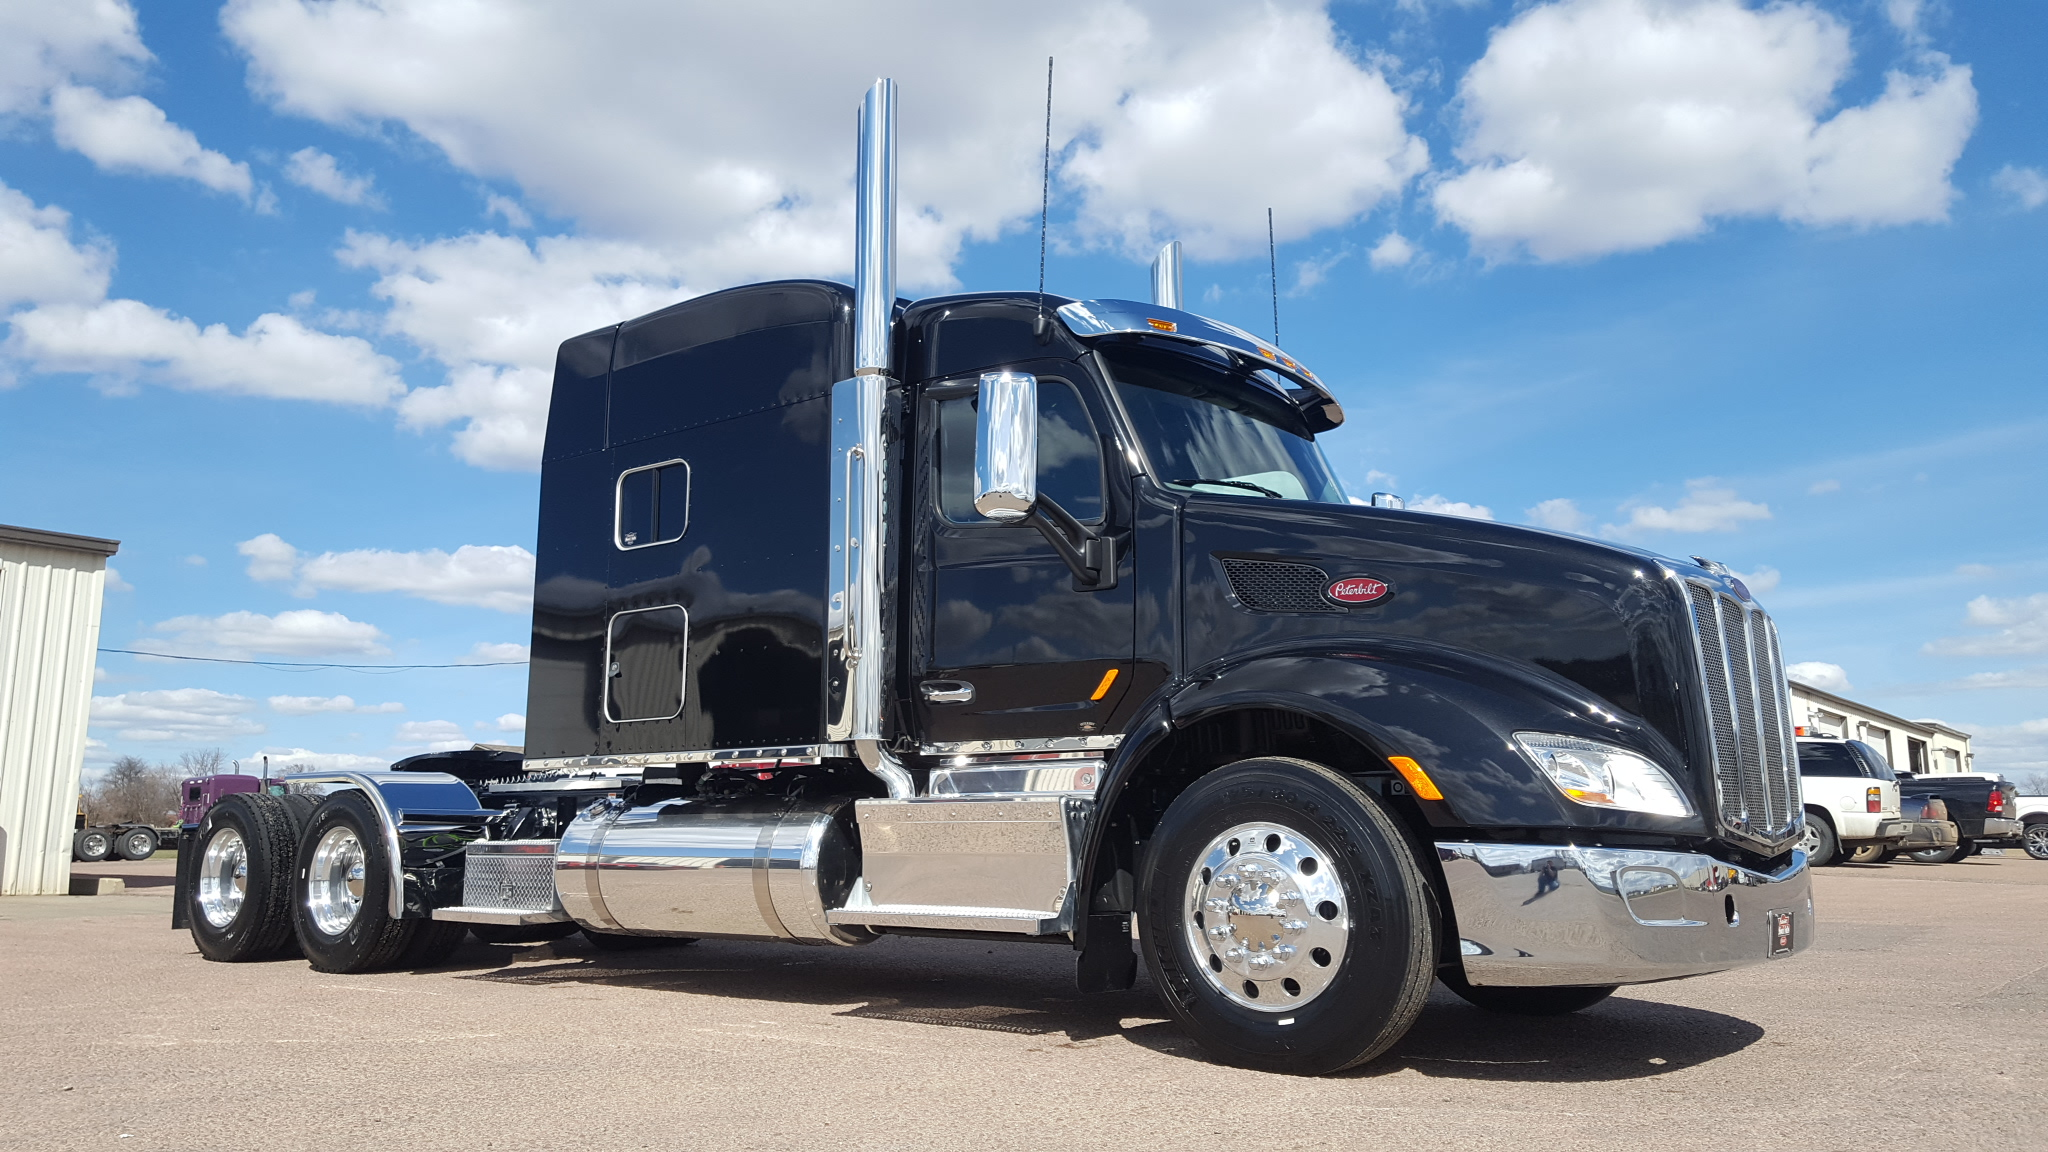 Wallpaper Stores In Sioux Falls Sd Beautiful Black Amp Chrome 579 Peterbilt Of Sioux Falls